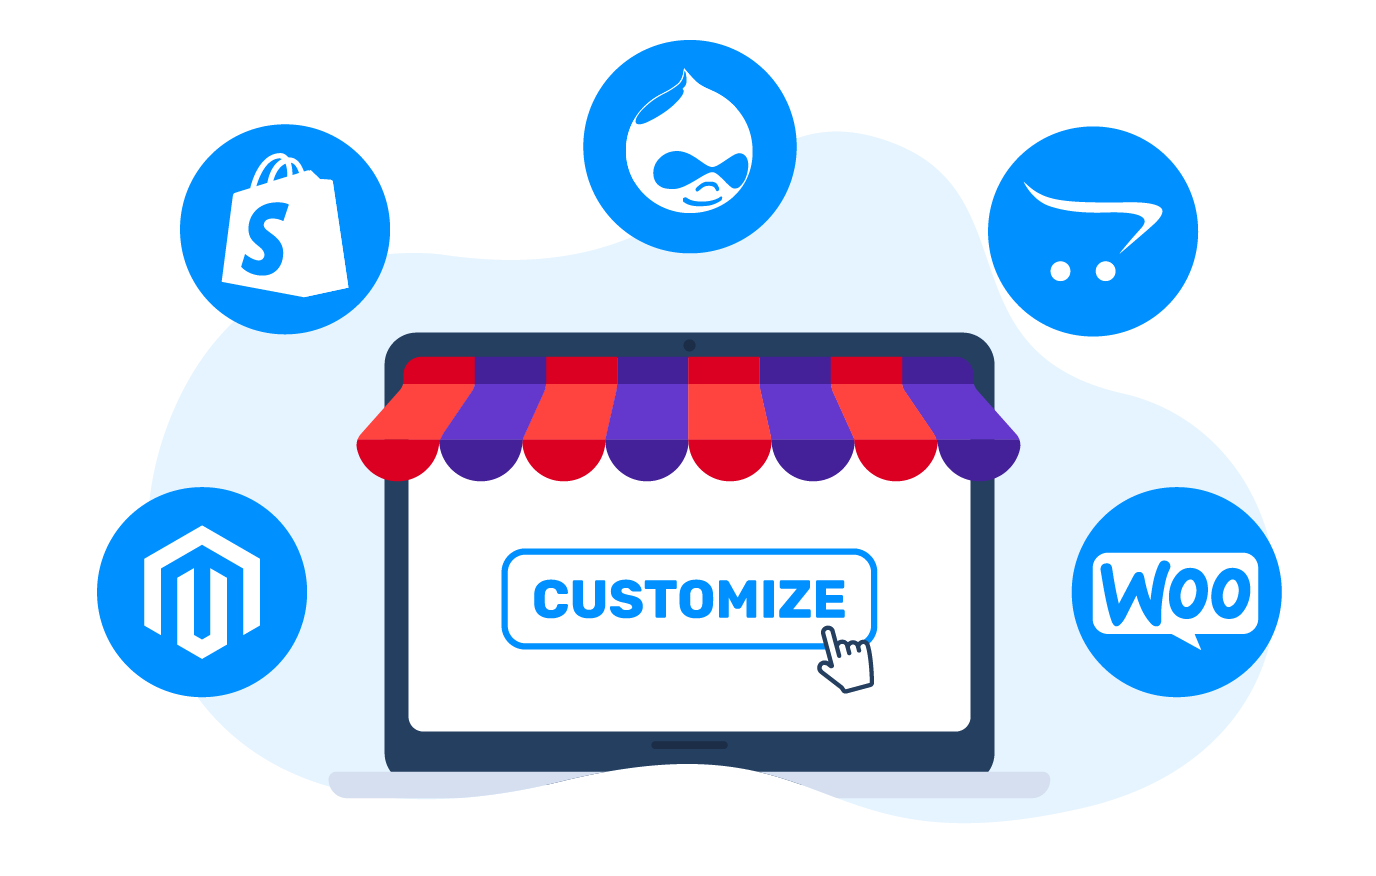 Want to add personalization capabilities to your new or existing online storefront